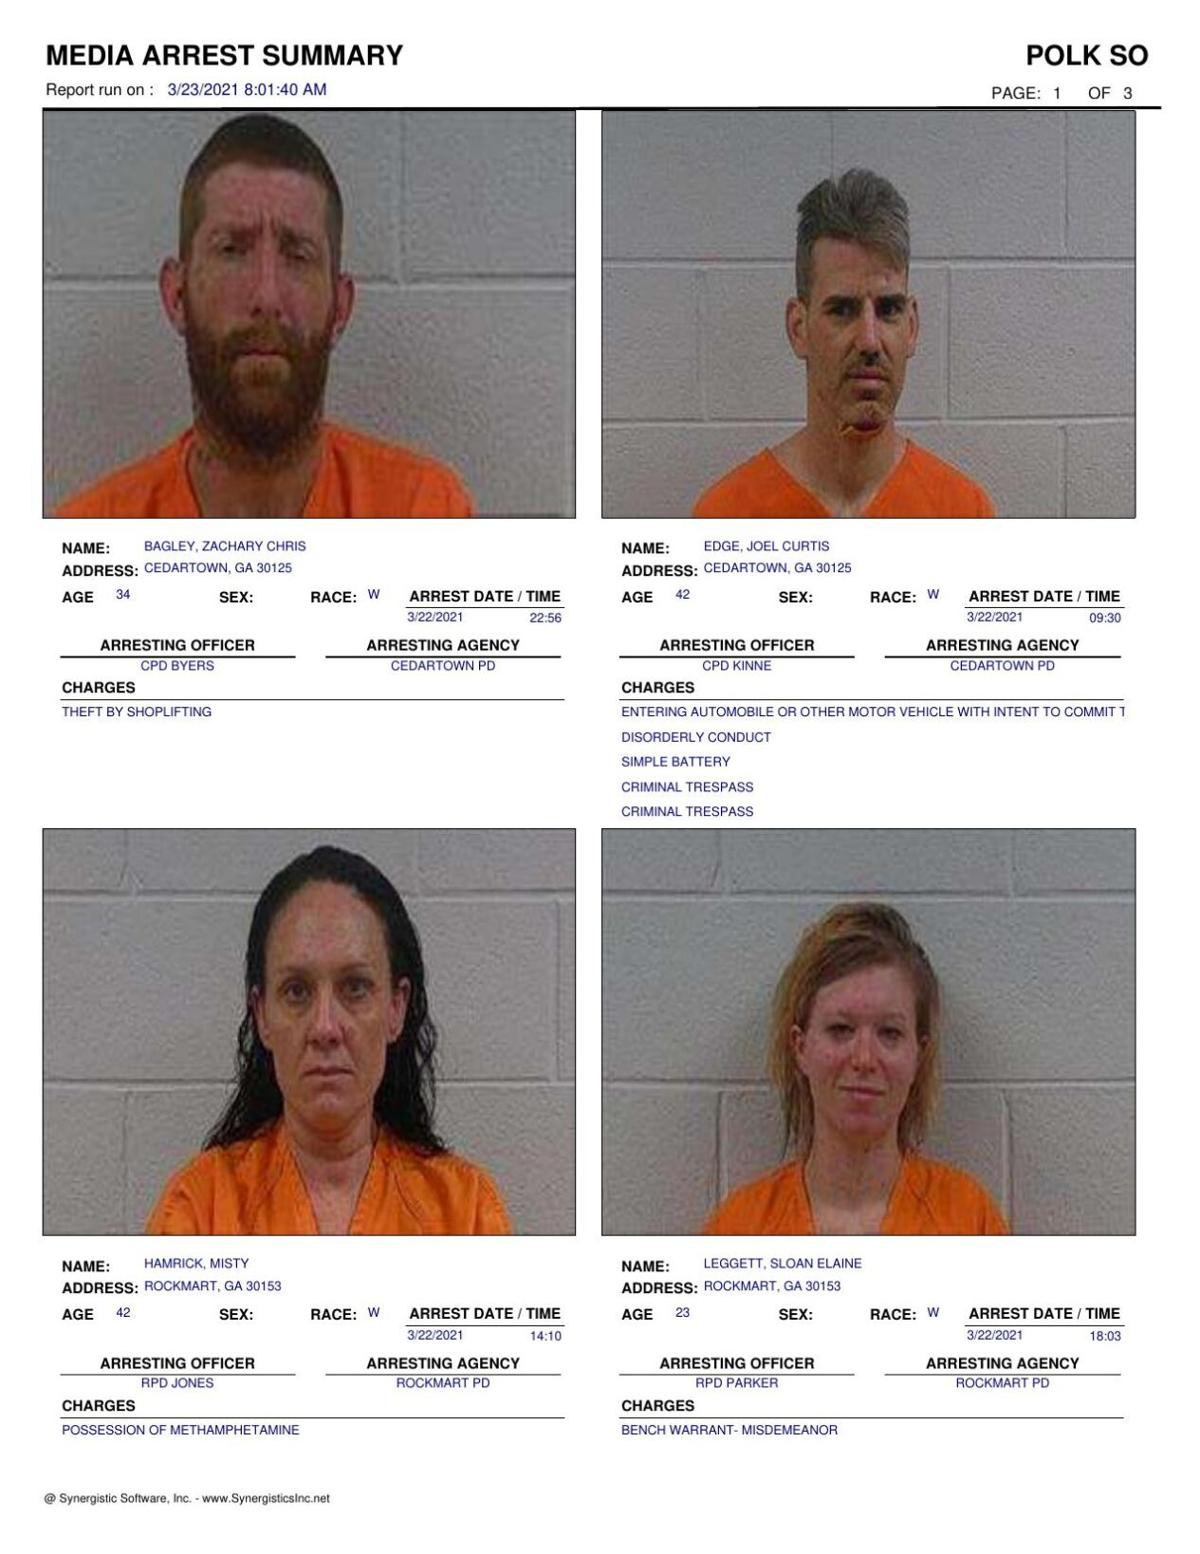 Polk County Jail Report for Tuesday, March 23